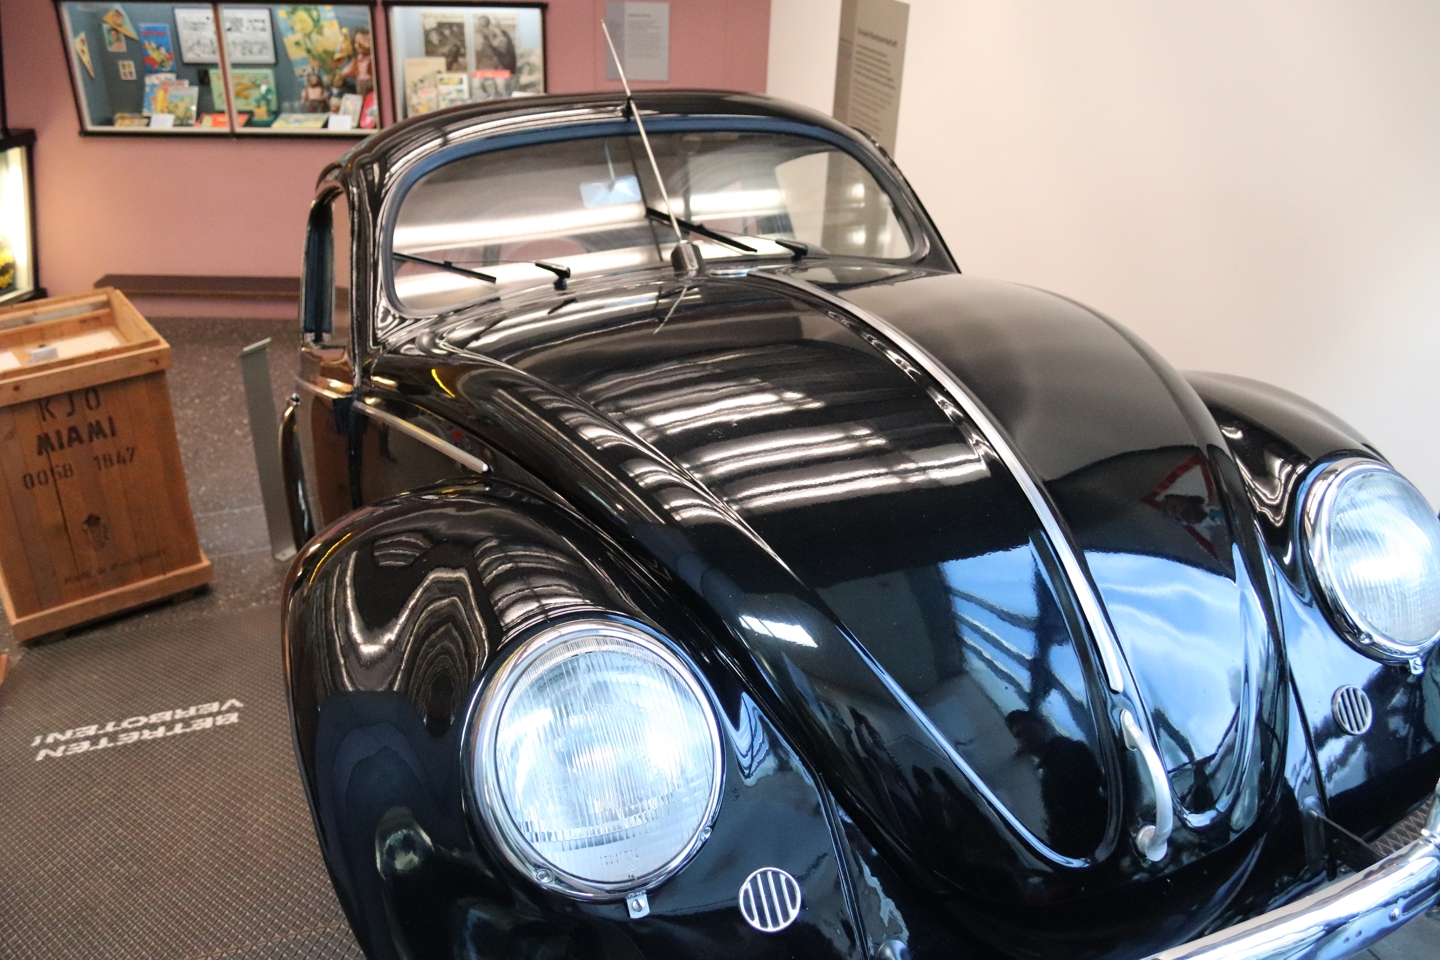 Old black Volkswagen Beetle